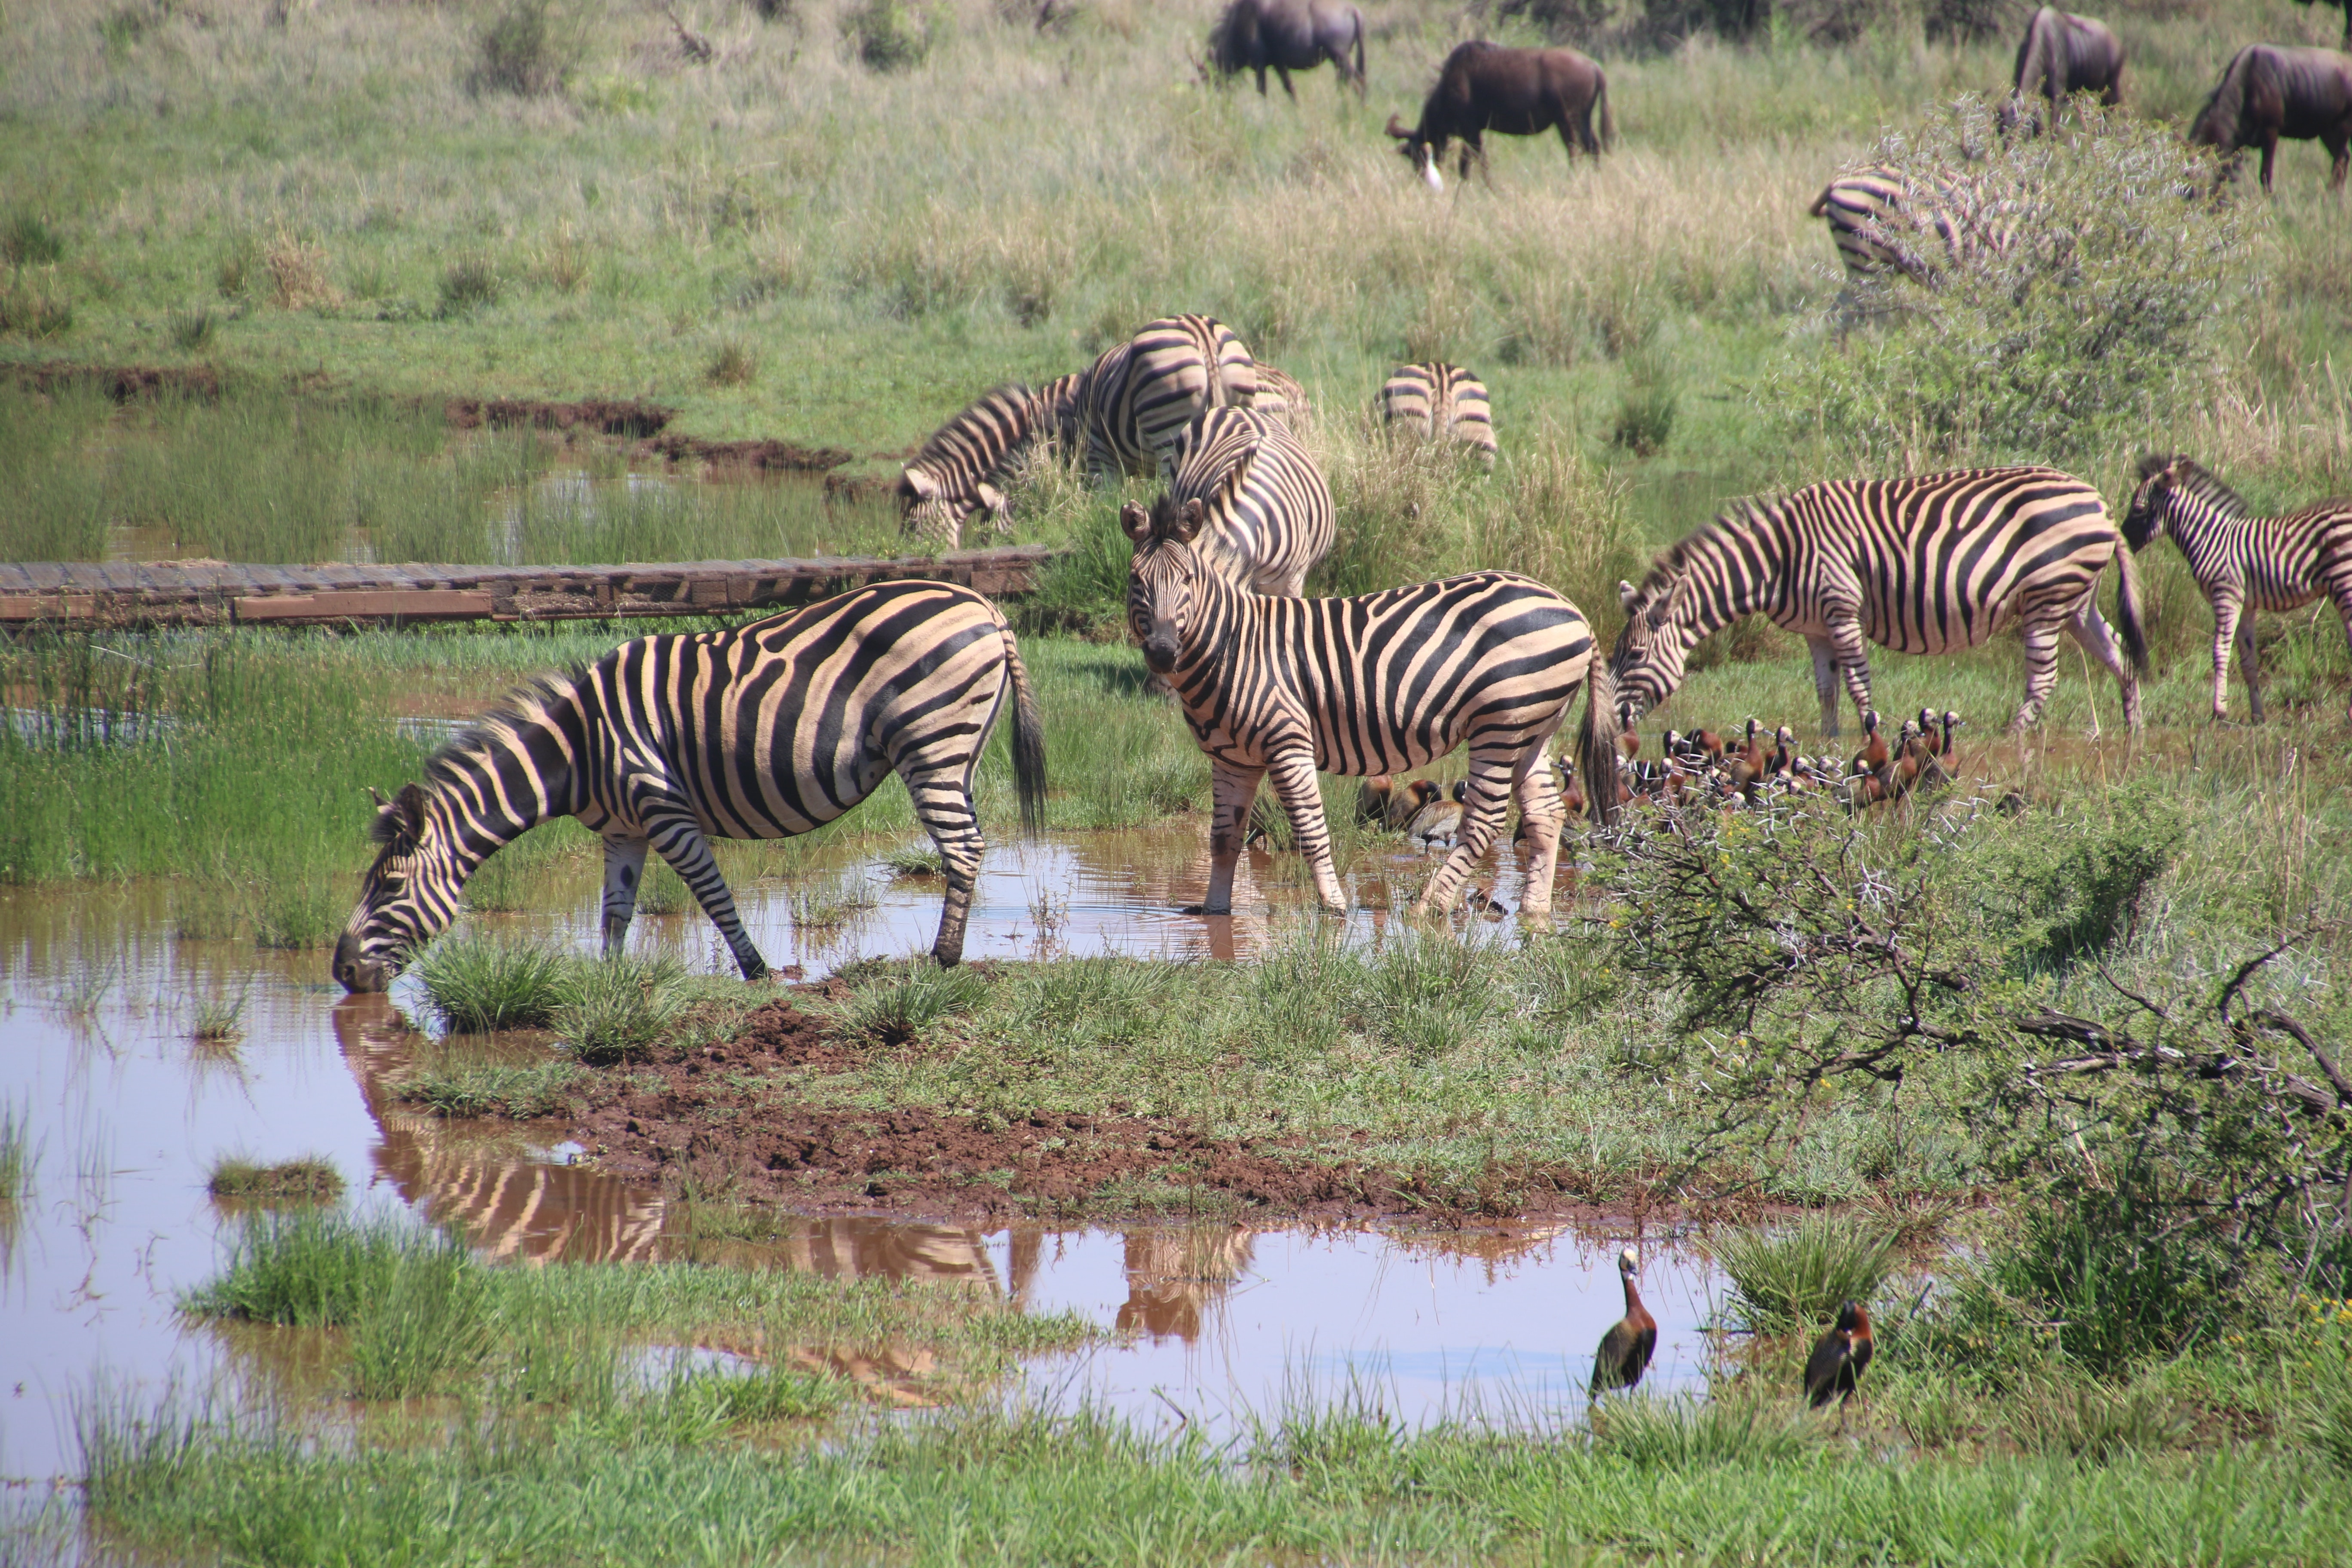 Herd of zebras on body of water with grass photo